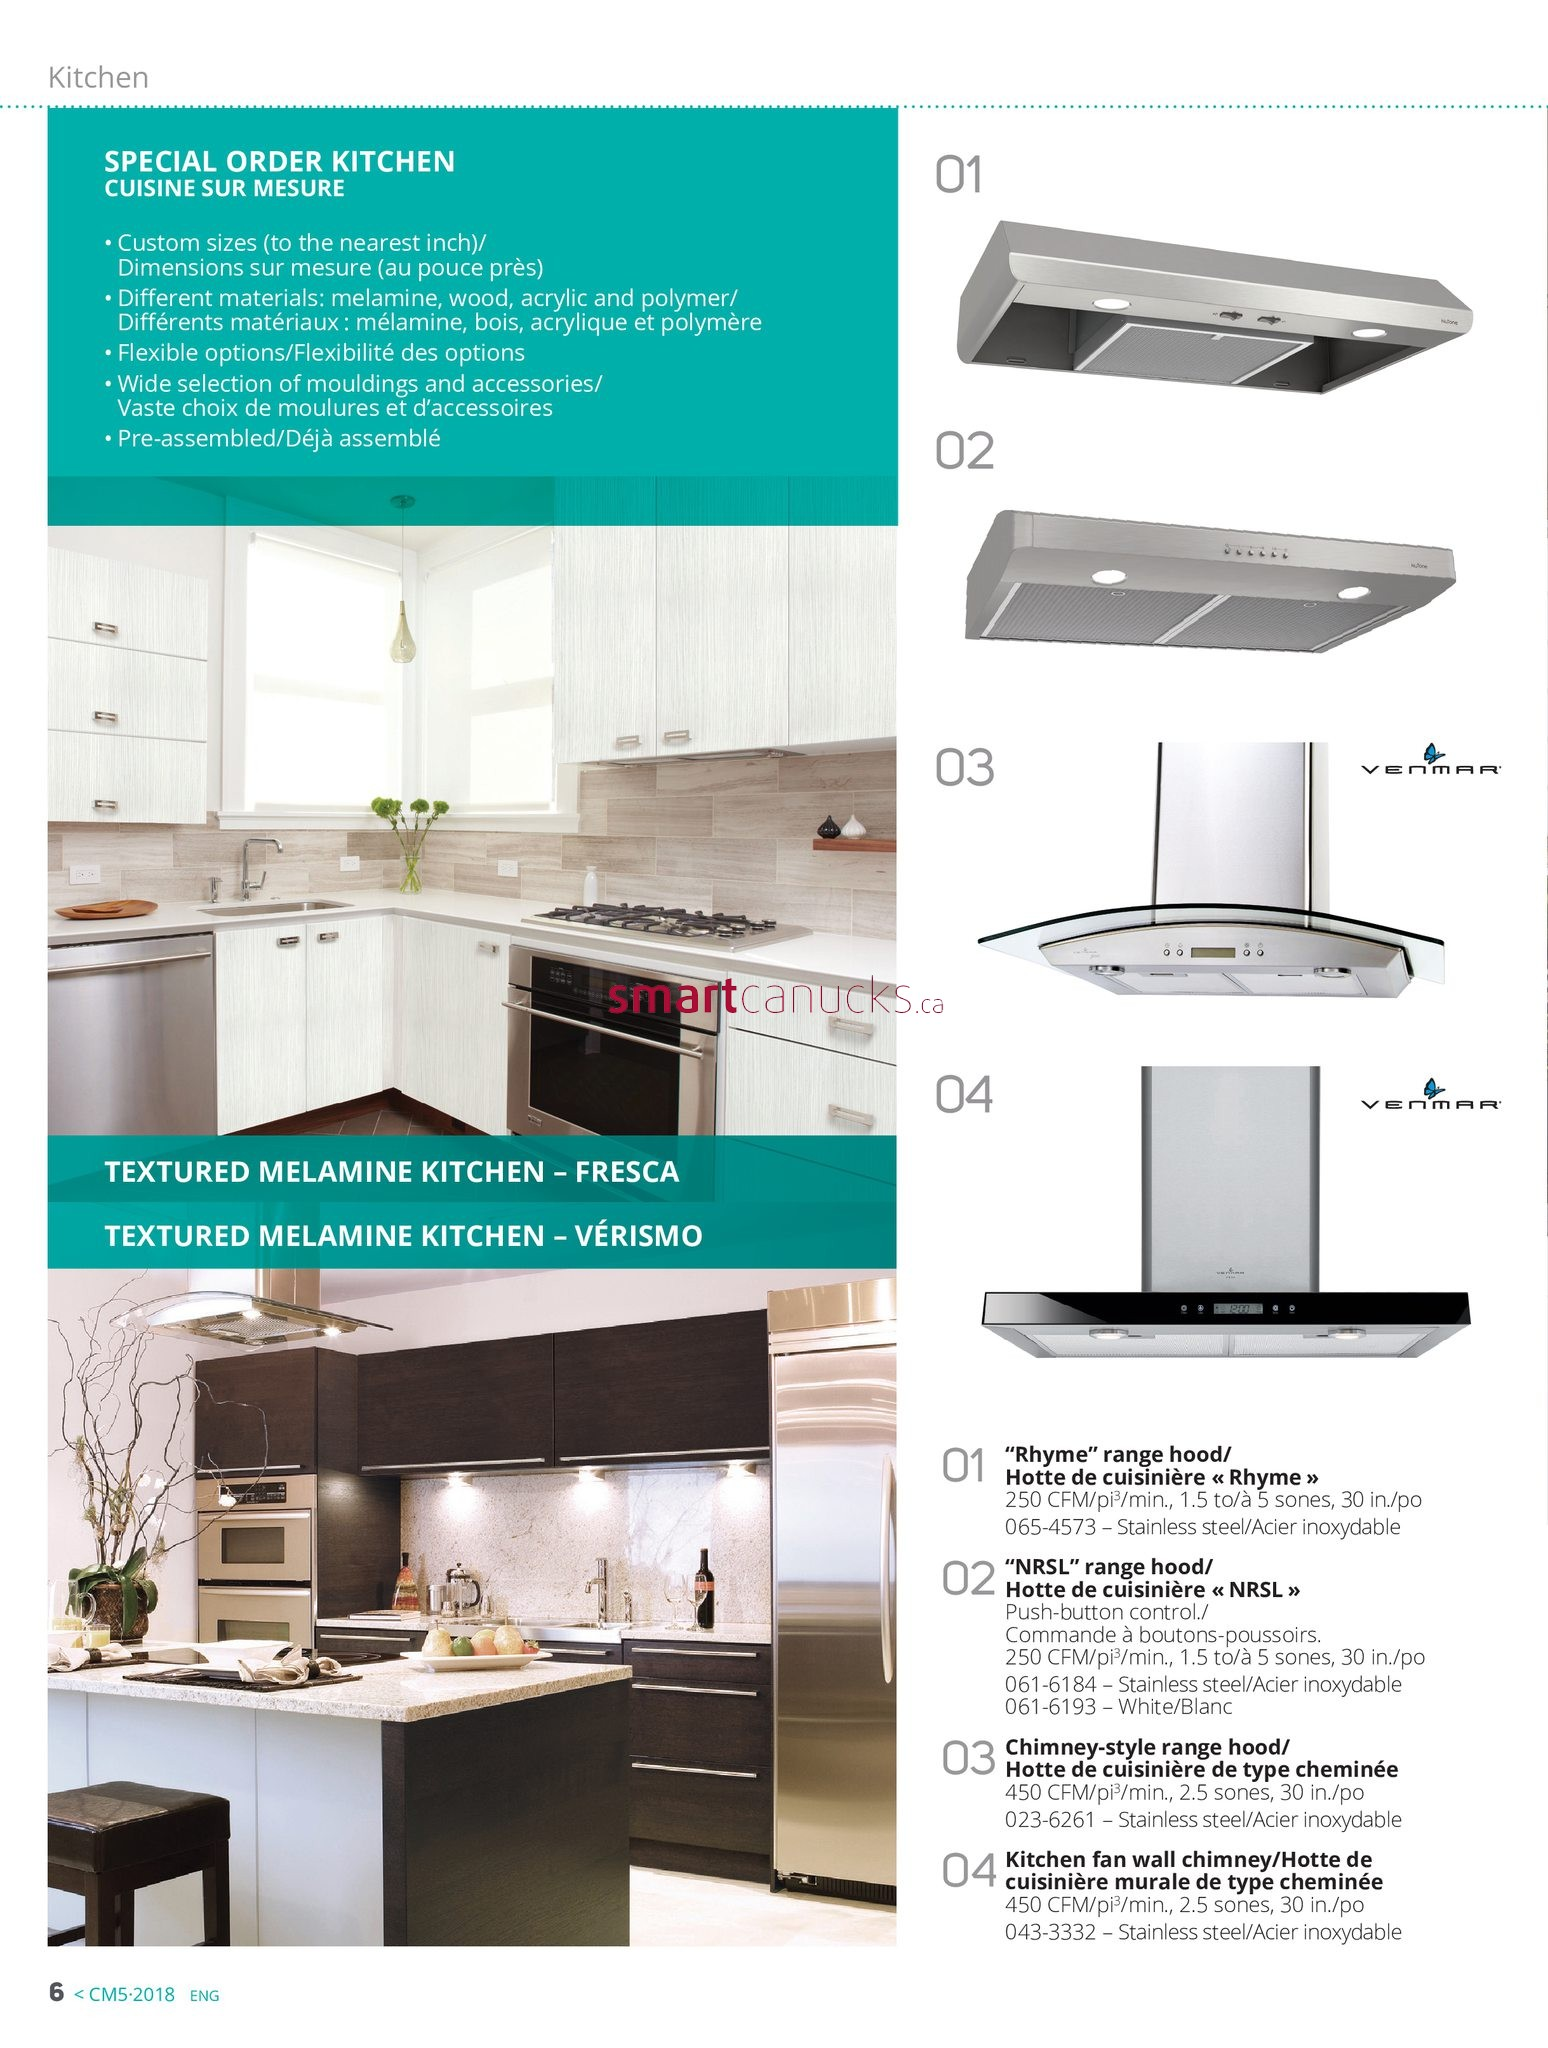 Bmr Interior Projects For Your Home Catalogue January 31 To February 27